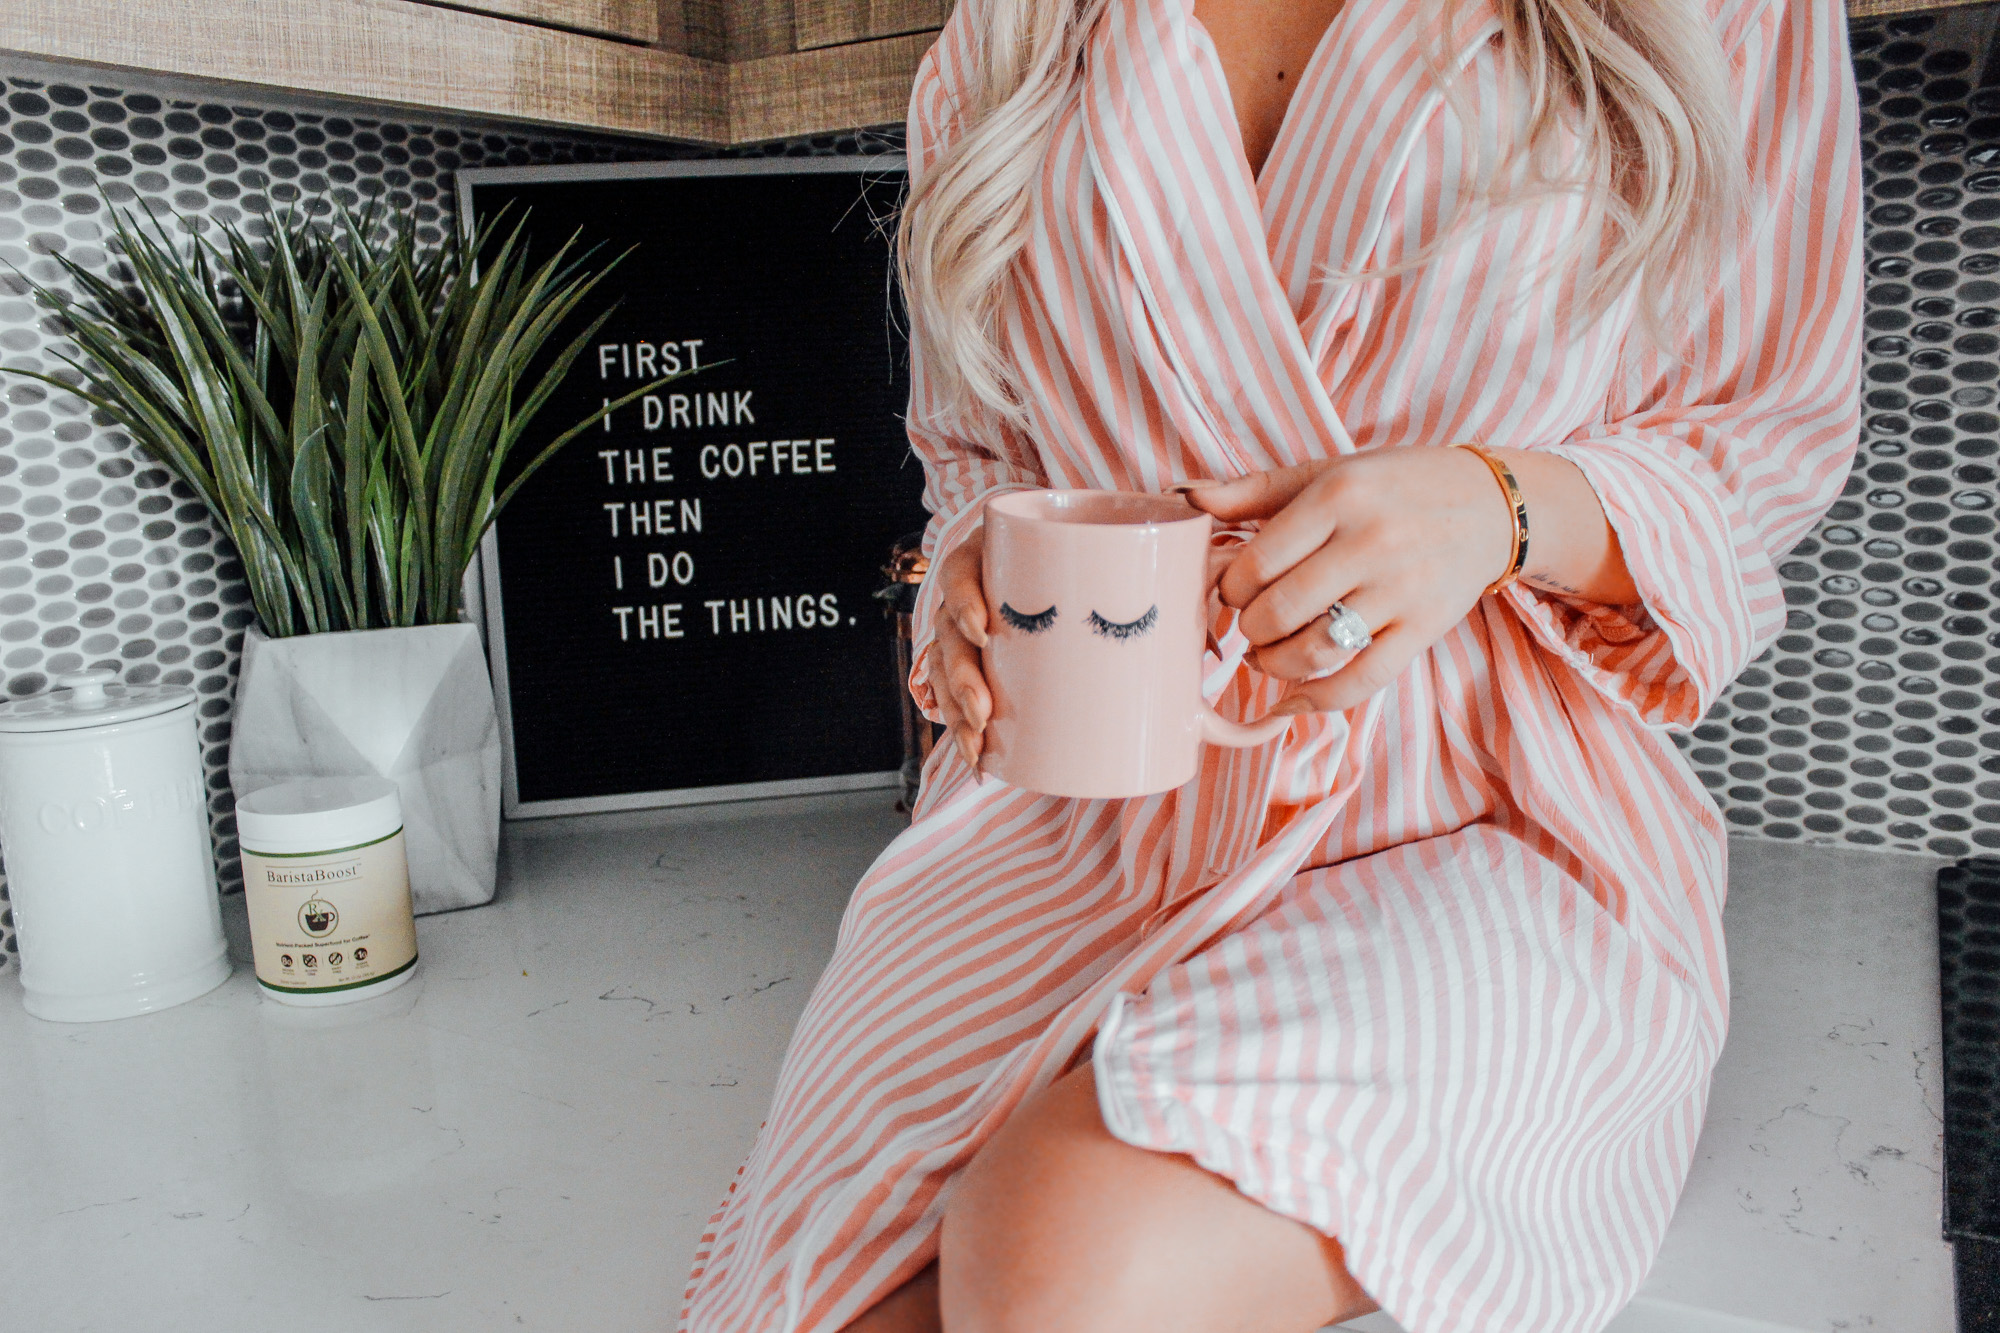 All About Barista Boost - Why I'm Obsessed & Why You Will be Too | Morning Coffee | Blondie in the City by Hayley Larue